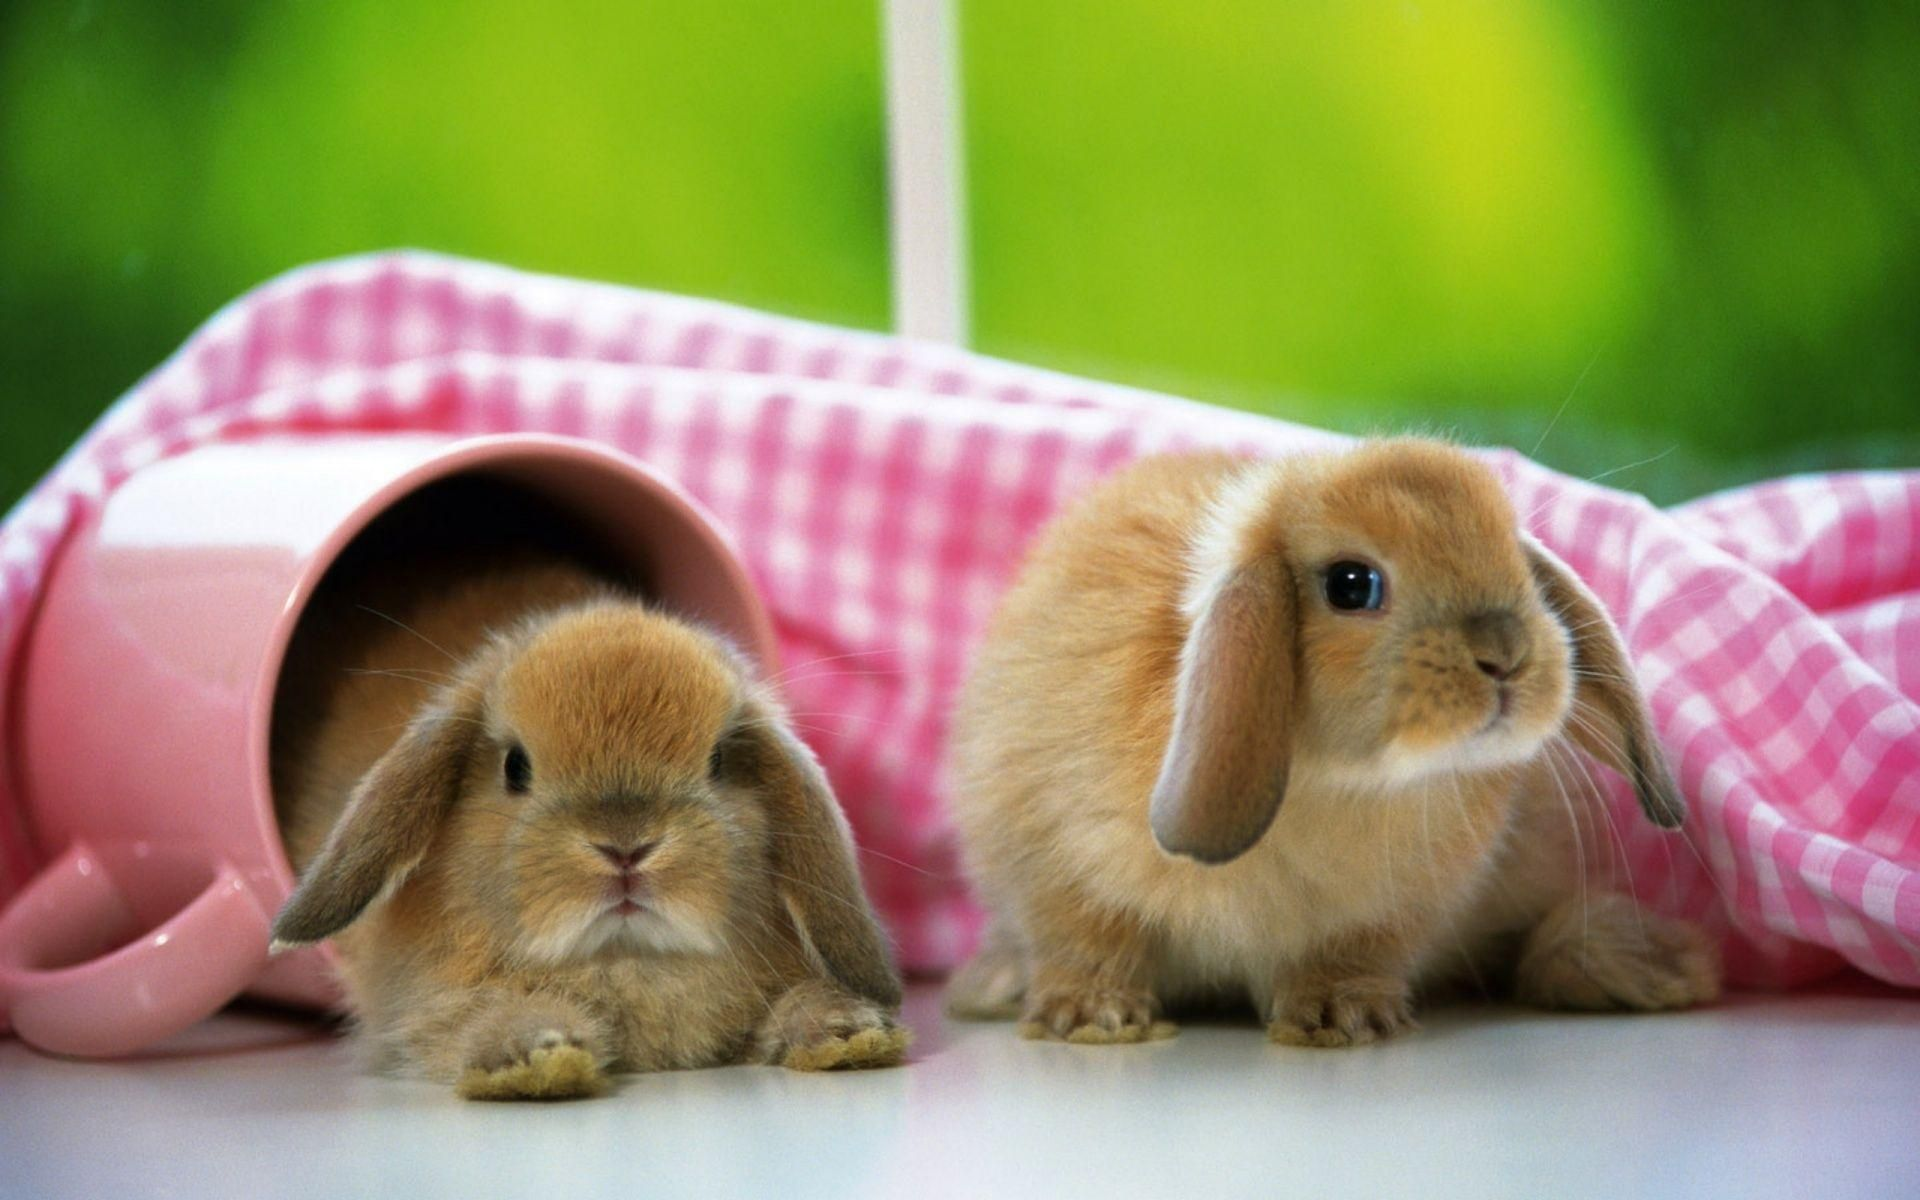 Animals For Baby Rabbit Wallpaper Cute Bunny Pictures Cute Animals Funny Rabbit